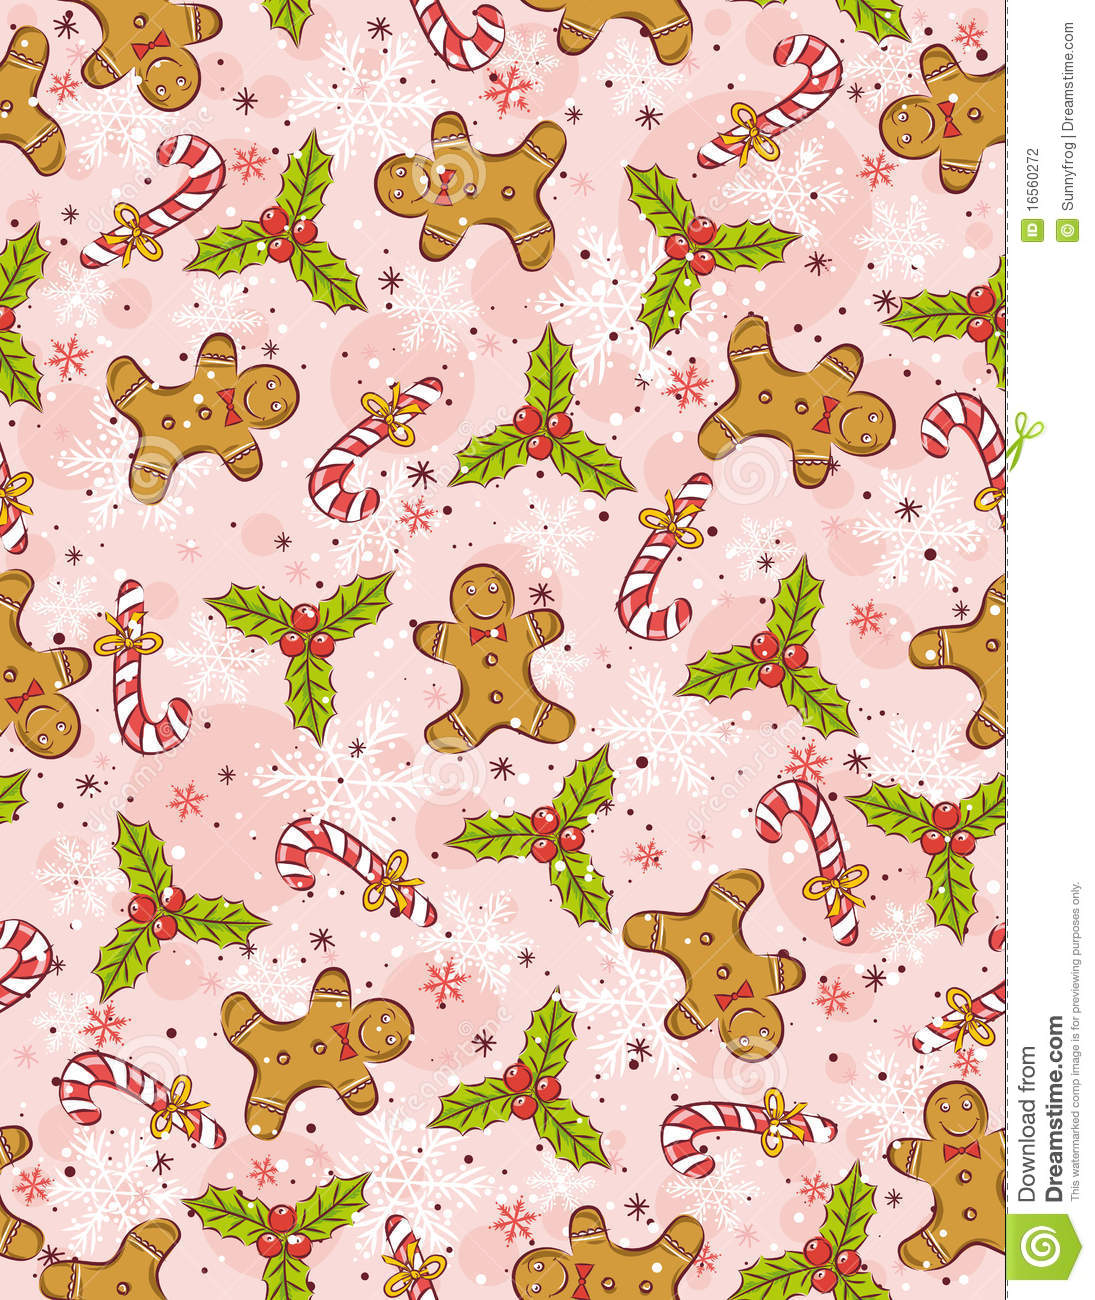 Cute Pink Snowman Wallpaper Wrapping Paper With Christmas Elements Stock Vector